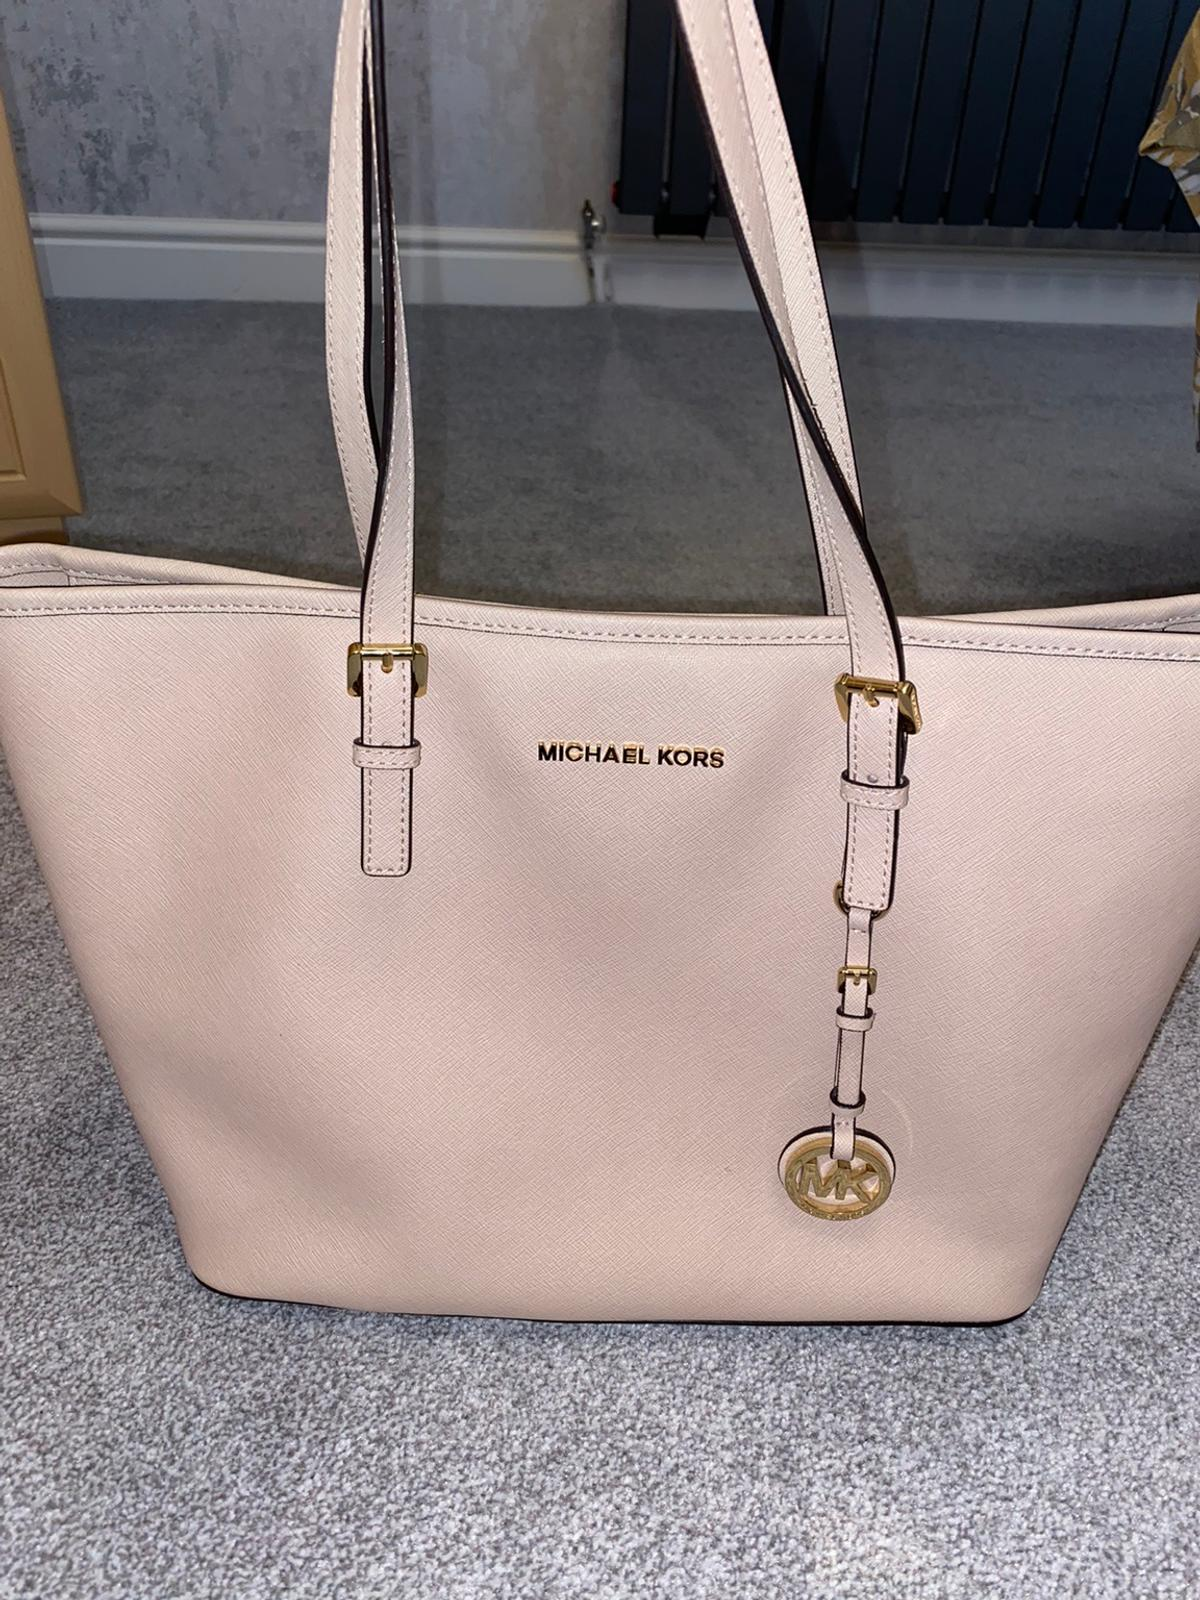 Genuine Michael Kors Bag in PR2 Preston for £110.00 for sale